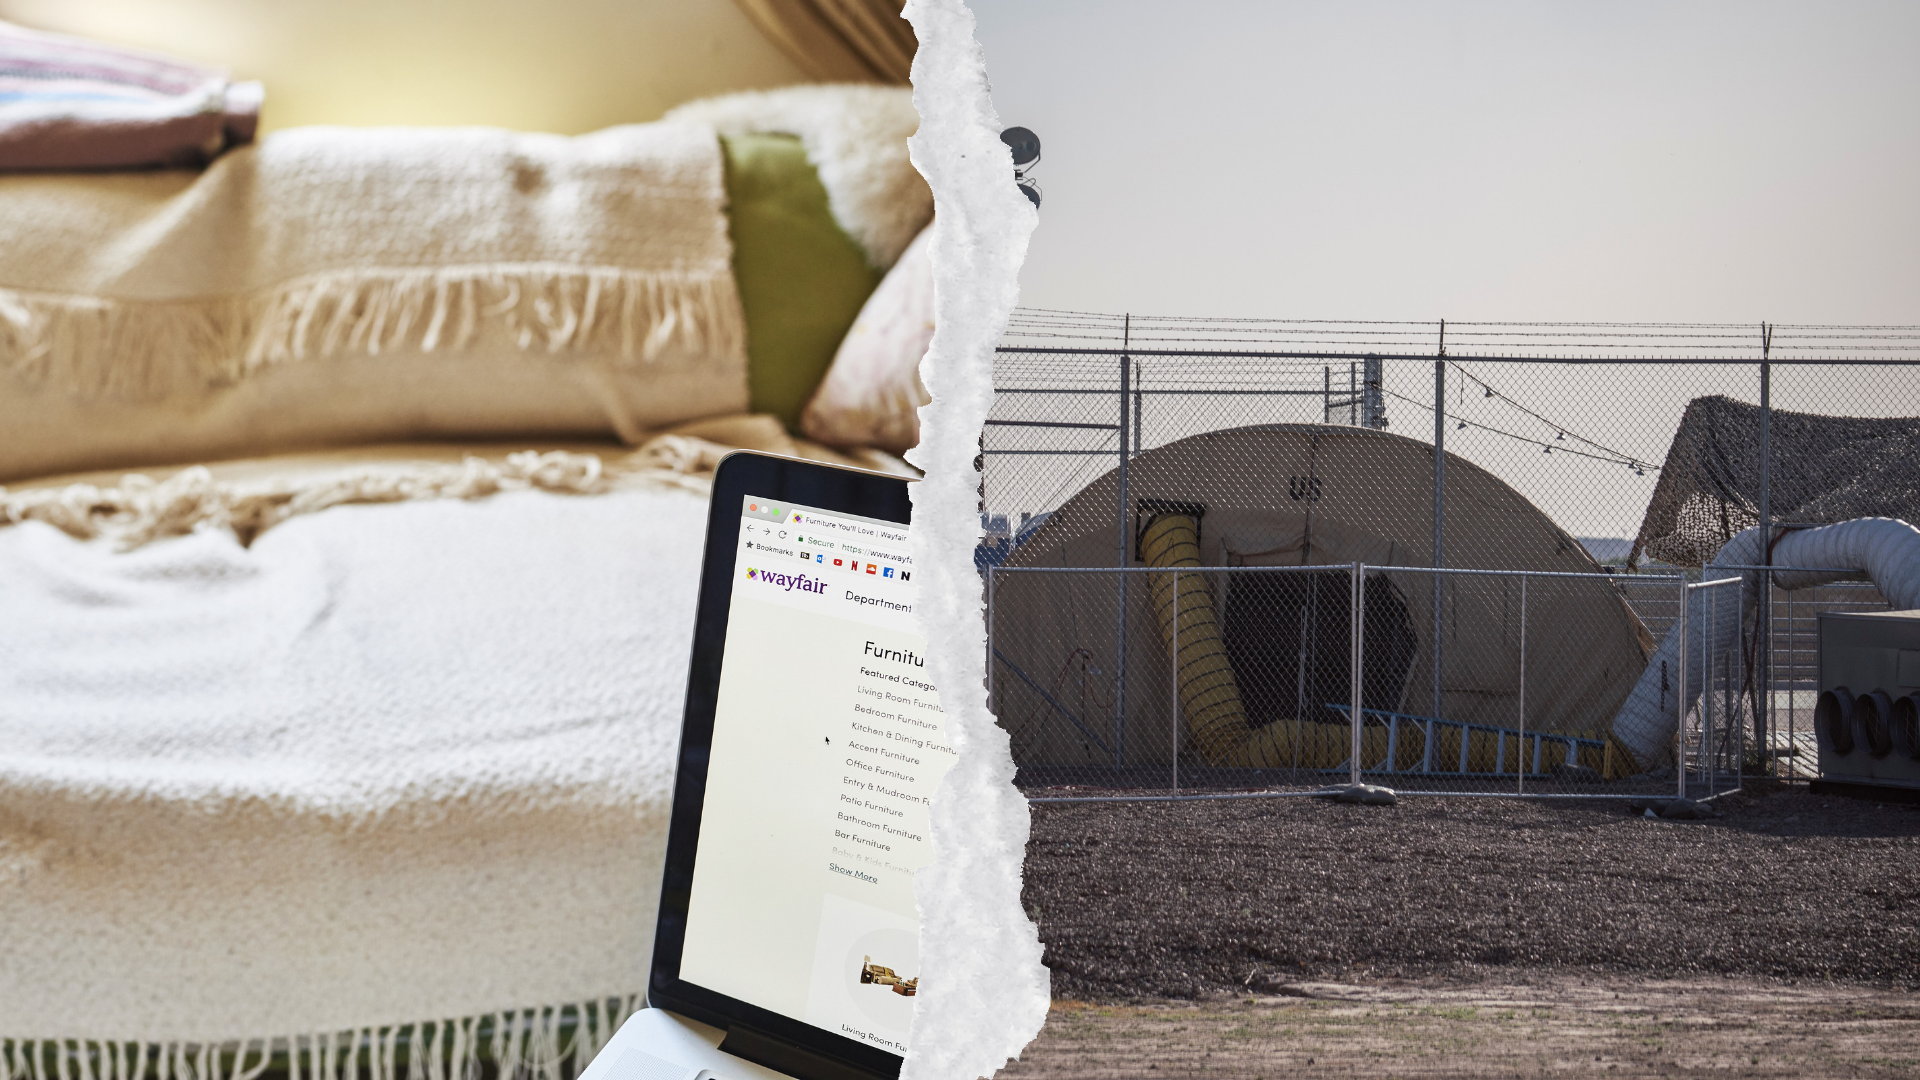 Wayfair Is Profiting From Immigration Detention, So Iu0027m Walking Out